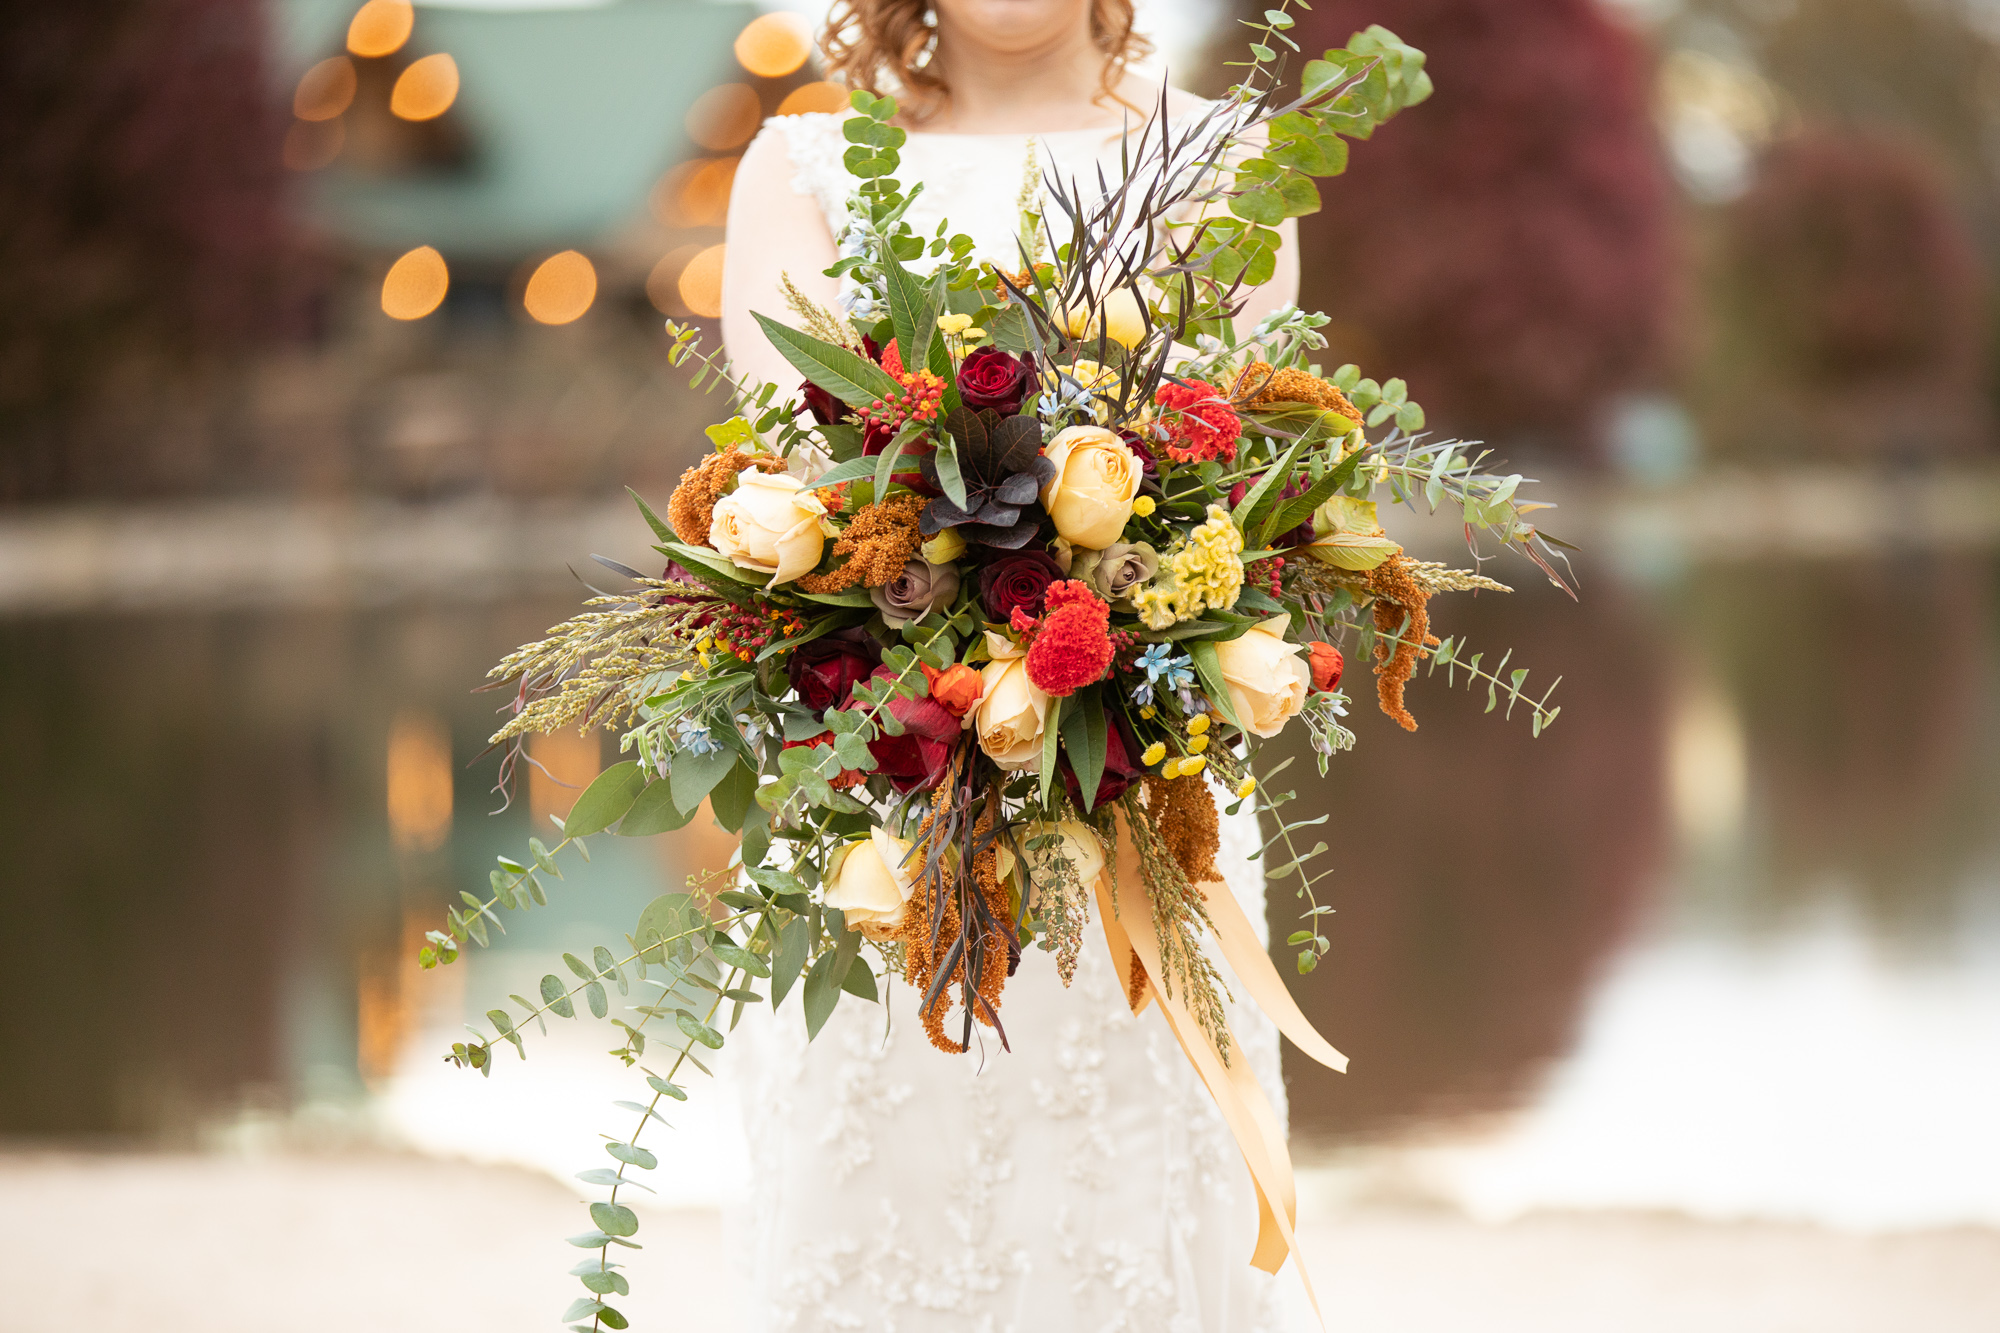 Posies by Patti bridal bouquet at Autumn wedding Styled shoot